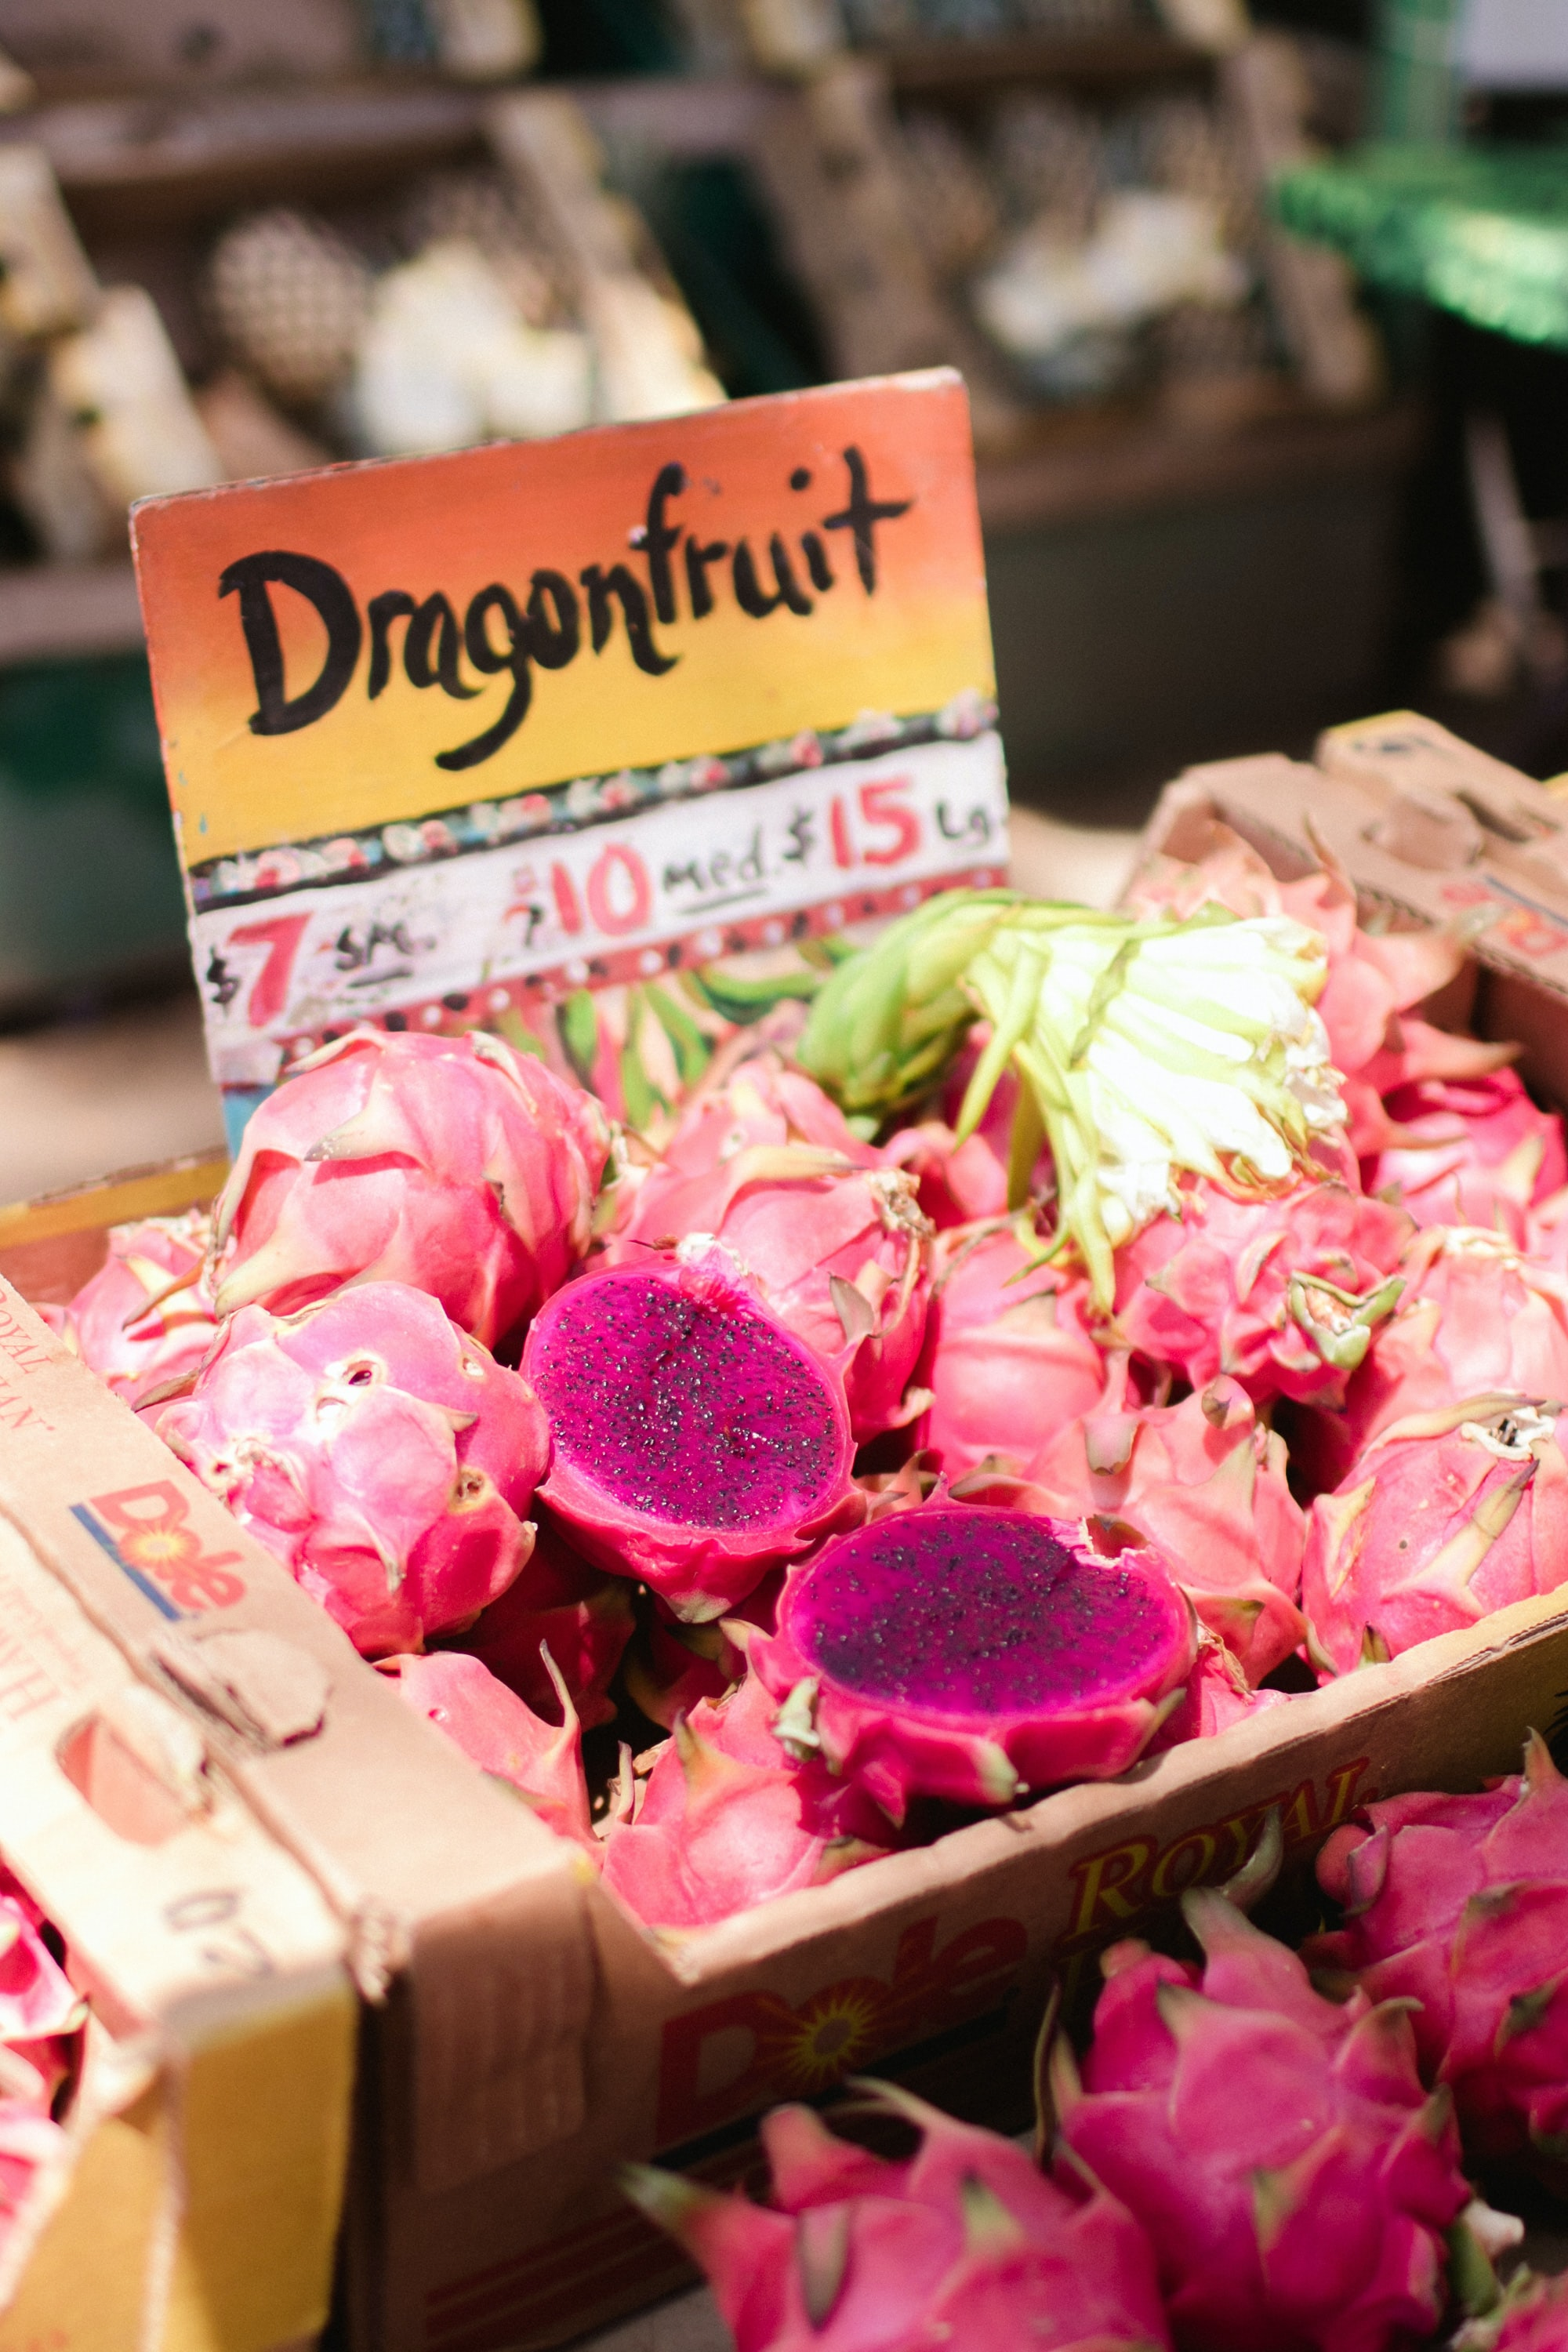 Dragon fruit signage